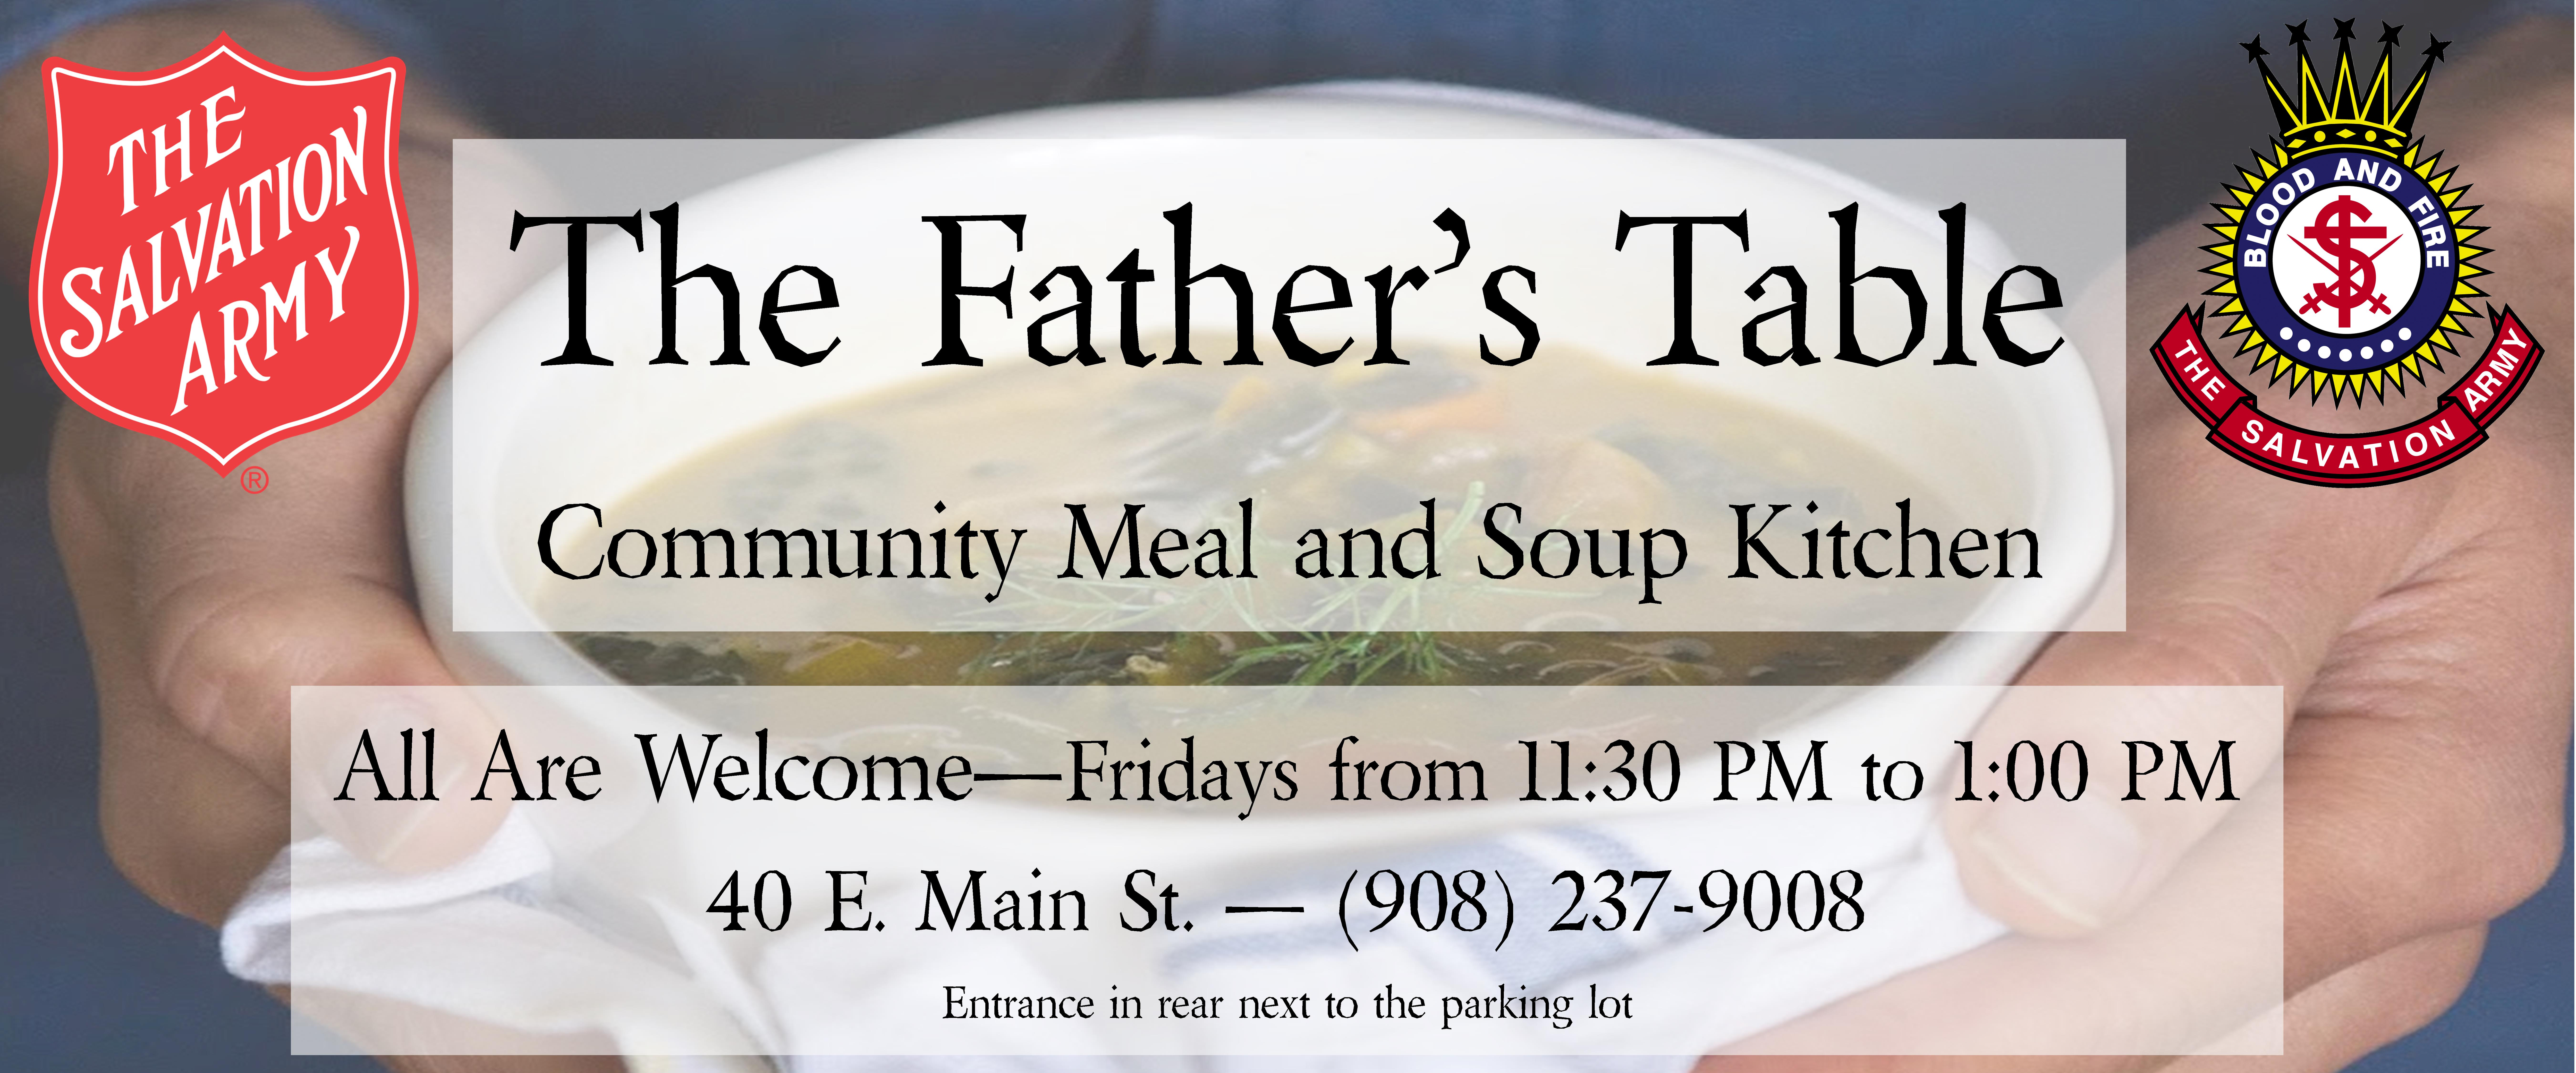 Soup Kitchen Volunteer Nj   The Salvation Army New Jersey Division Soup Kitchen